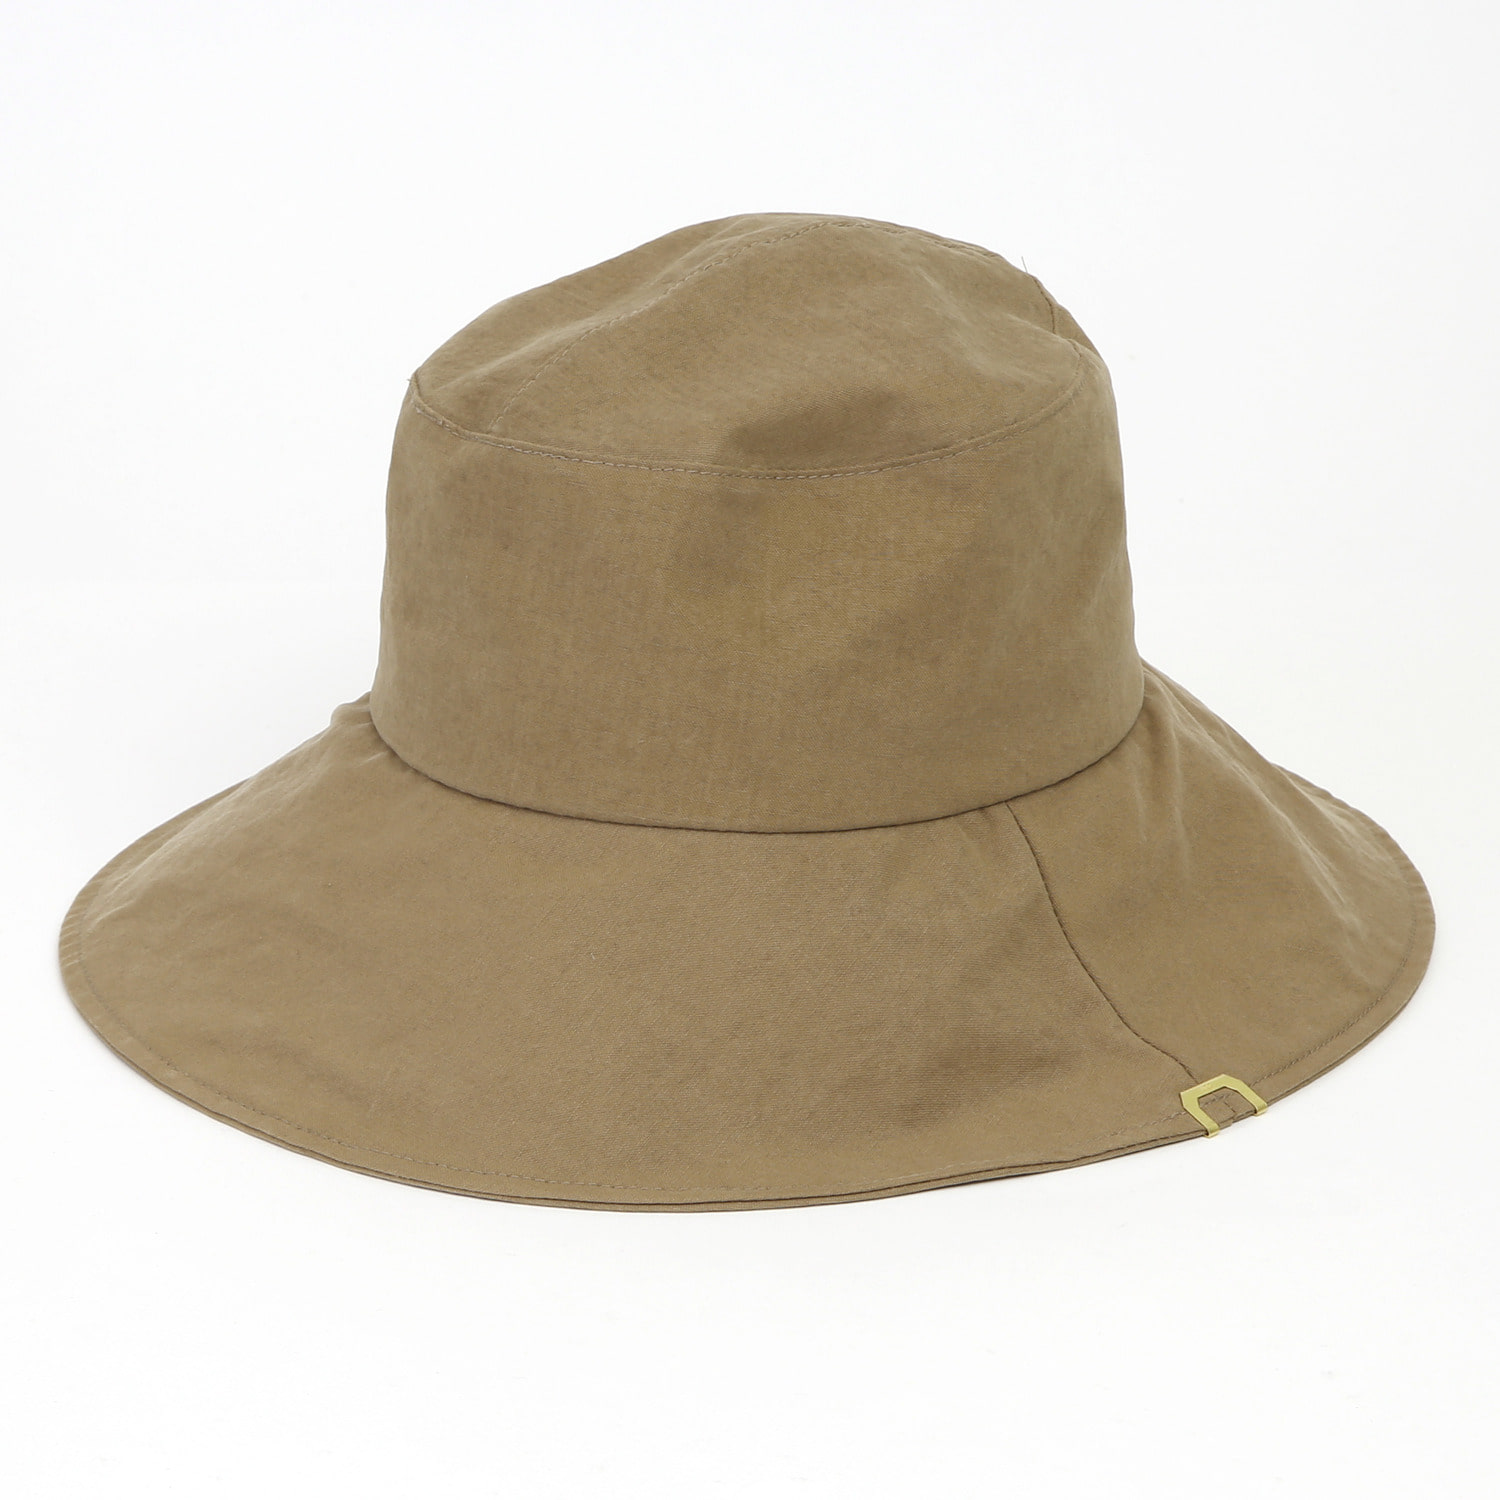 UMBRELLA HAT / BIO / HEAVY DESERT